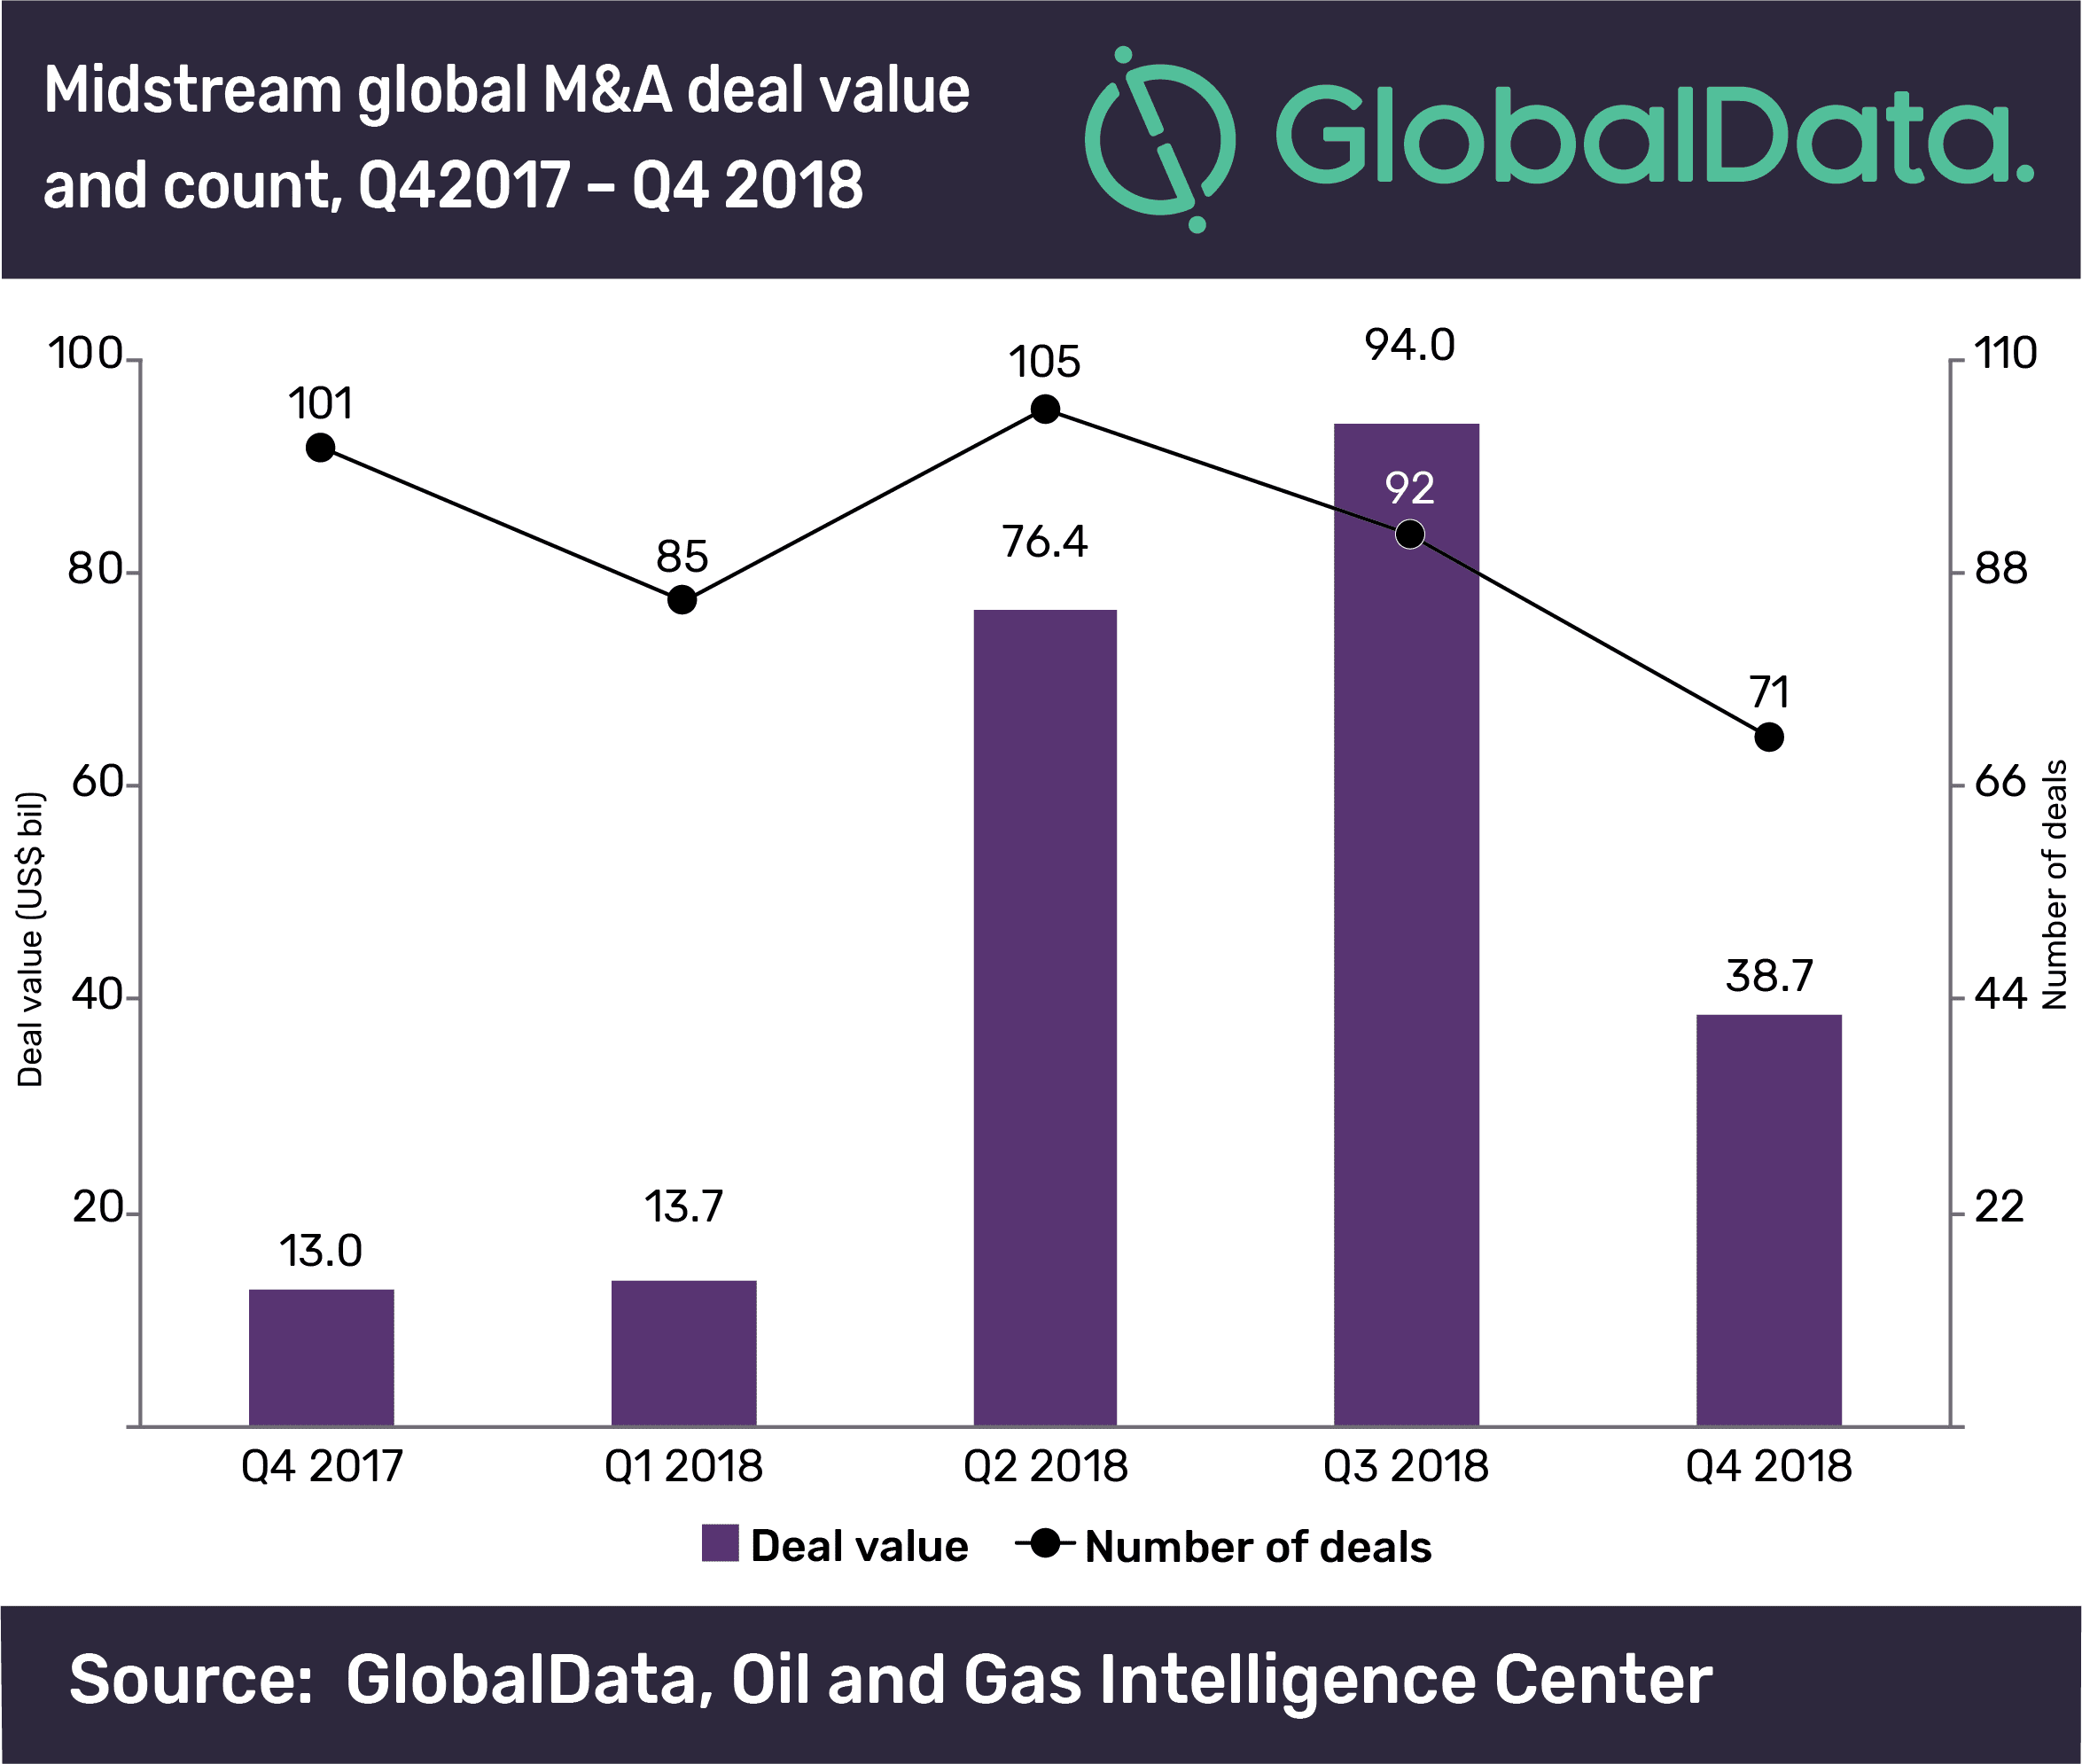 Midstream oil and gas M&A values declined 59% in Q4 2018